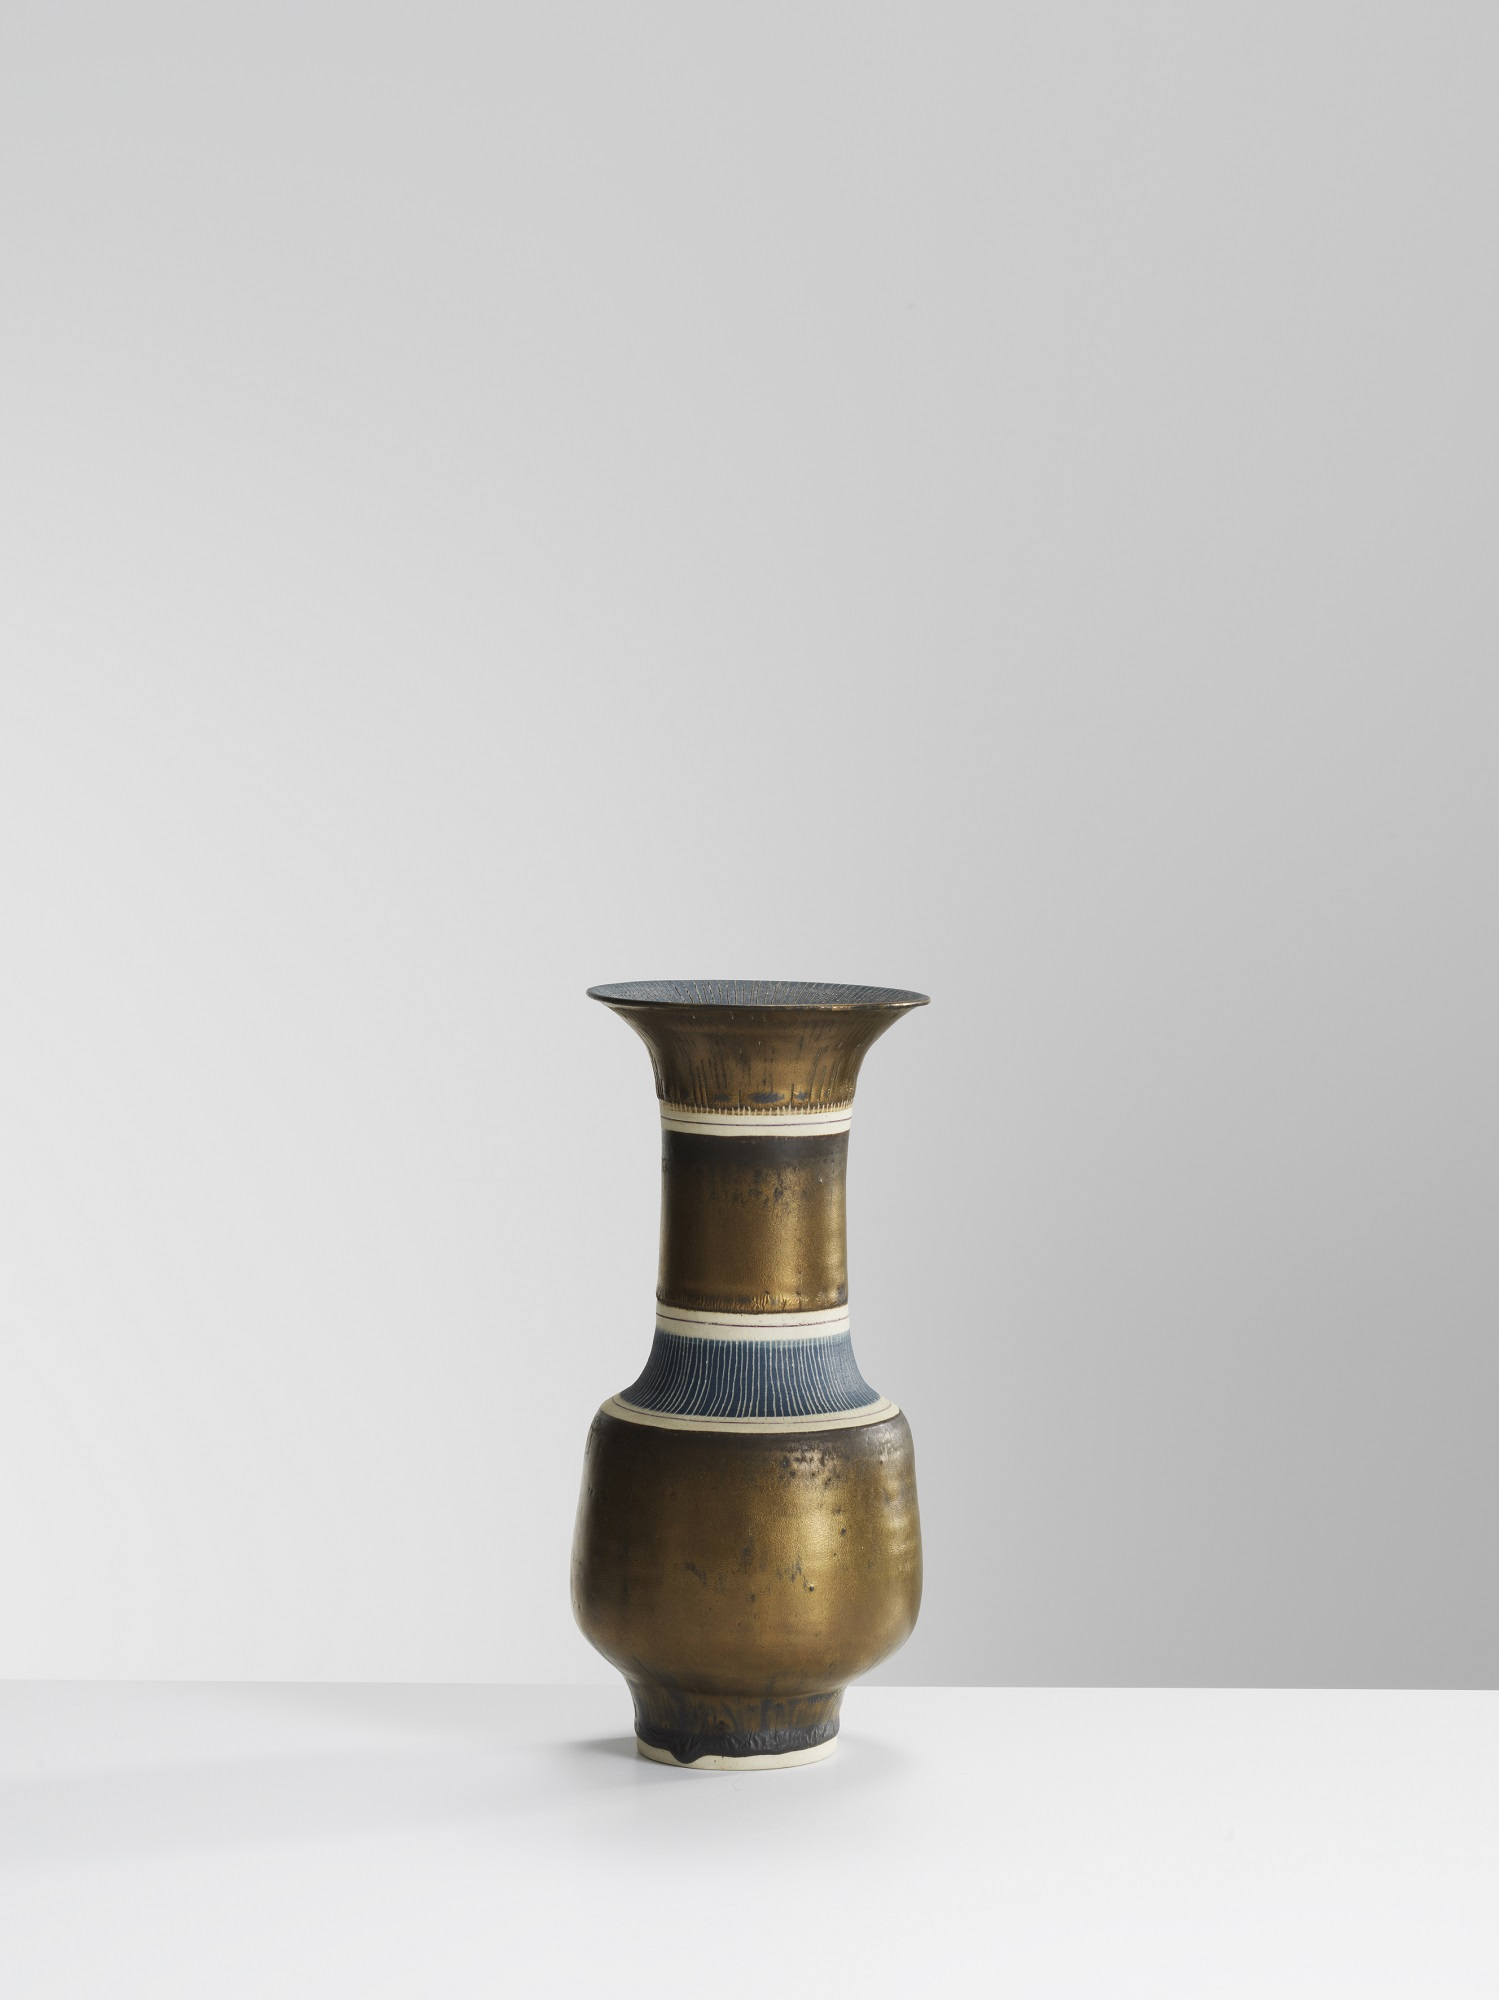 Lucie Rie, Bronze Vase with sgra ffi to, porcelain with manganese glaze (23 x 10.5 cms) Image: Michael Harvey